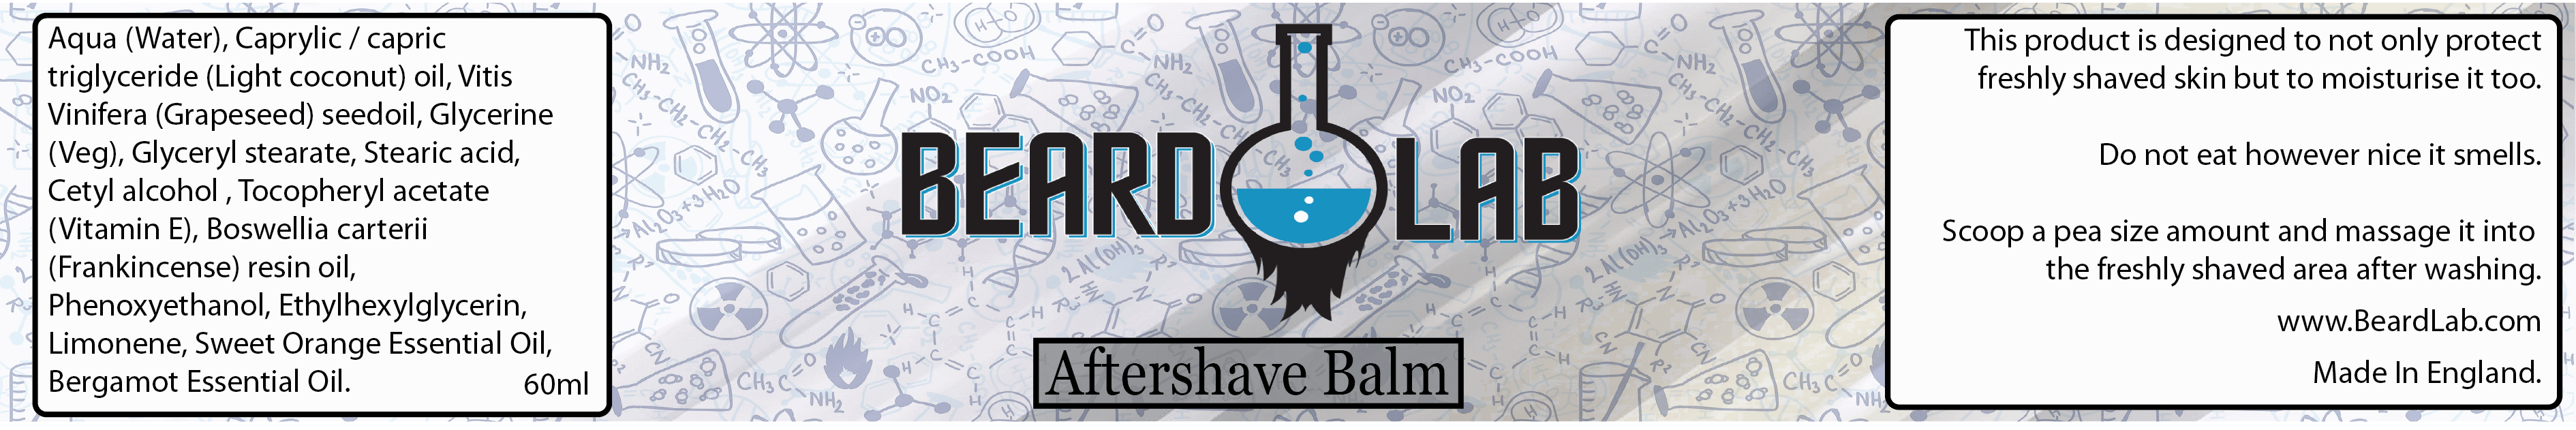 Aftershave Balm 60ml - Beard Lab